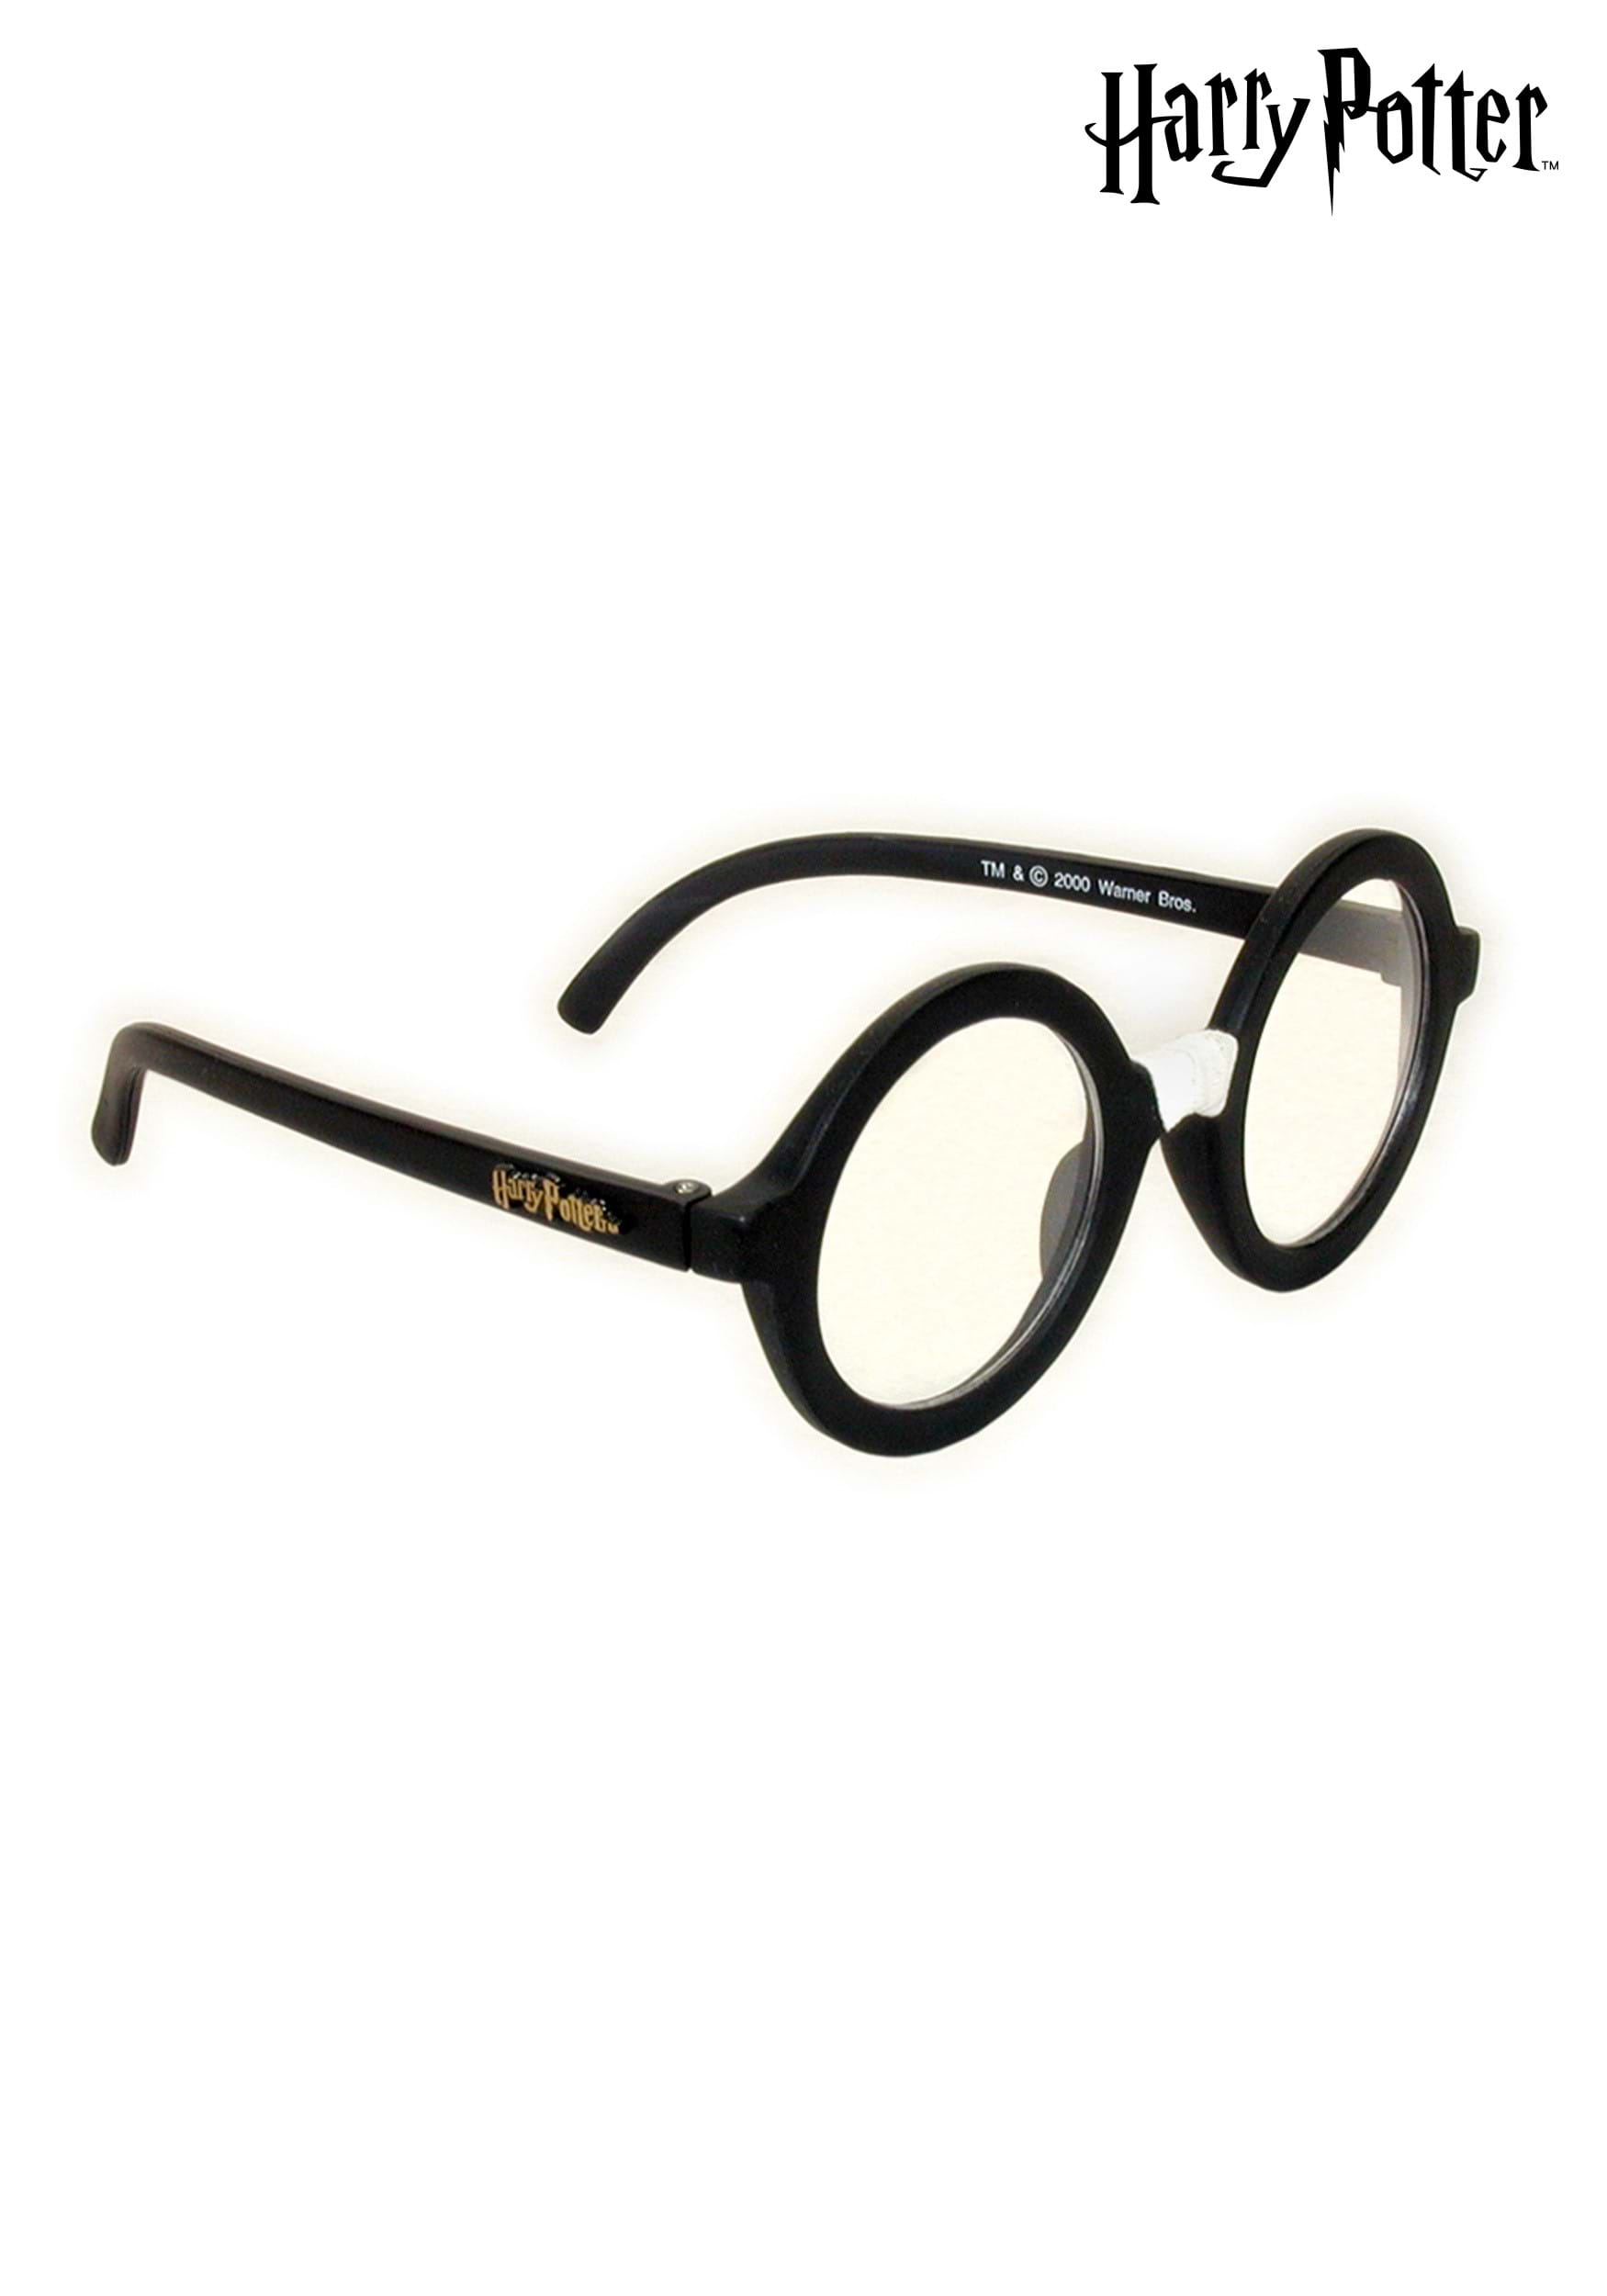 Thick Harry Potter Glasses